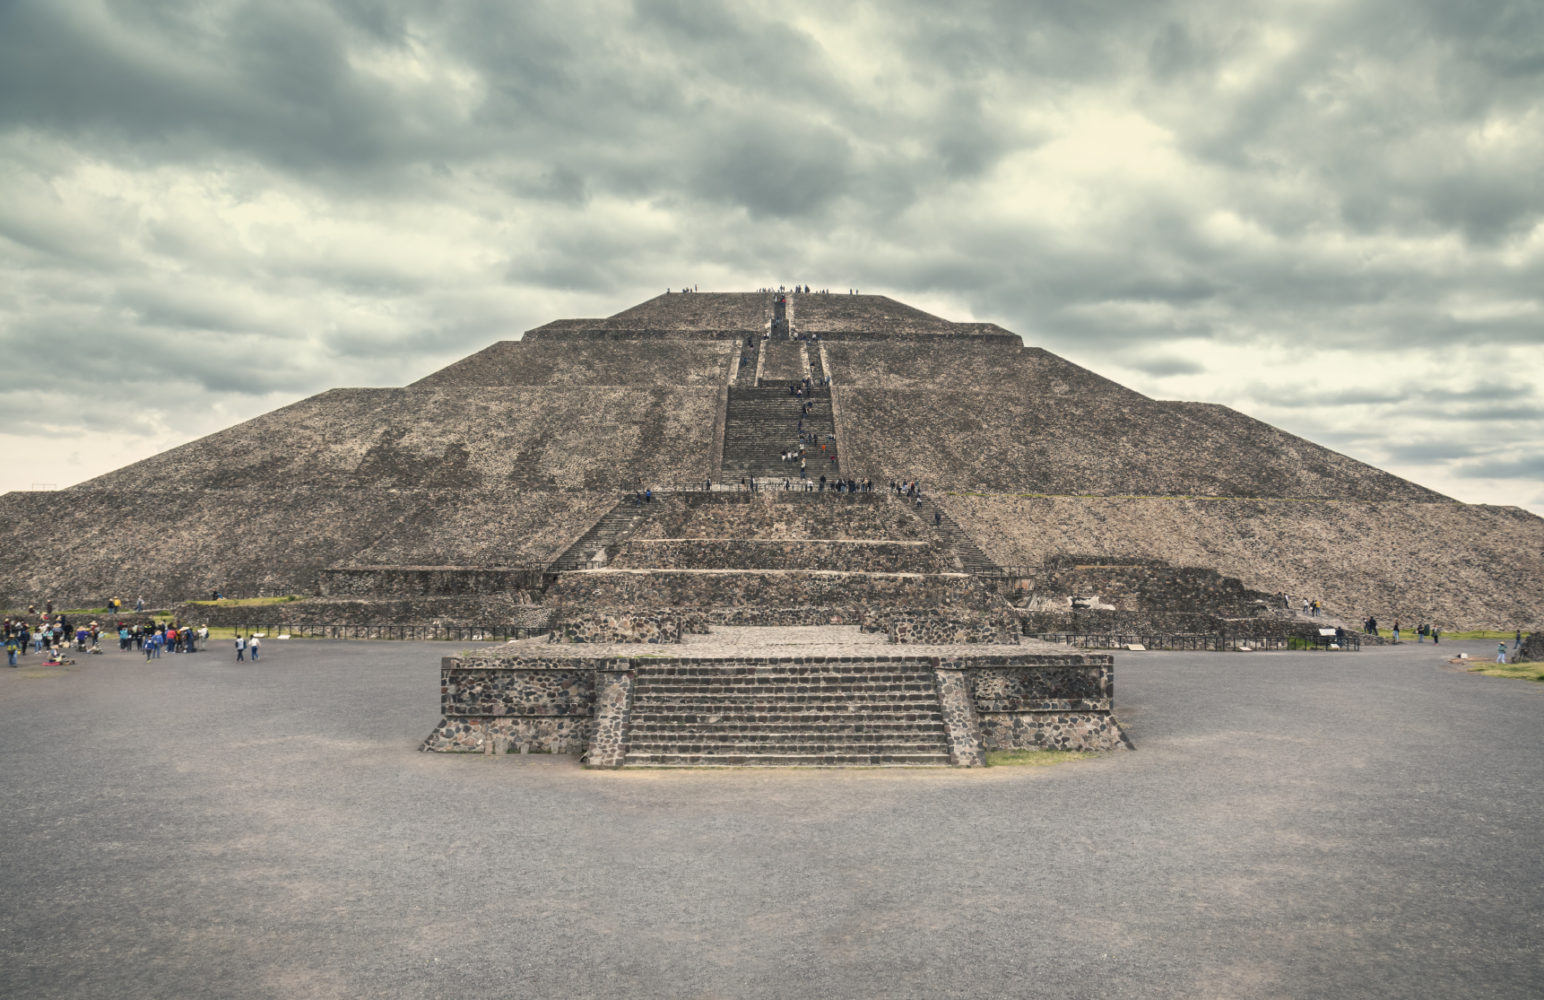 Hope and Inspiration in the Land of the Aztecs